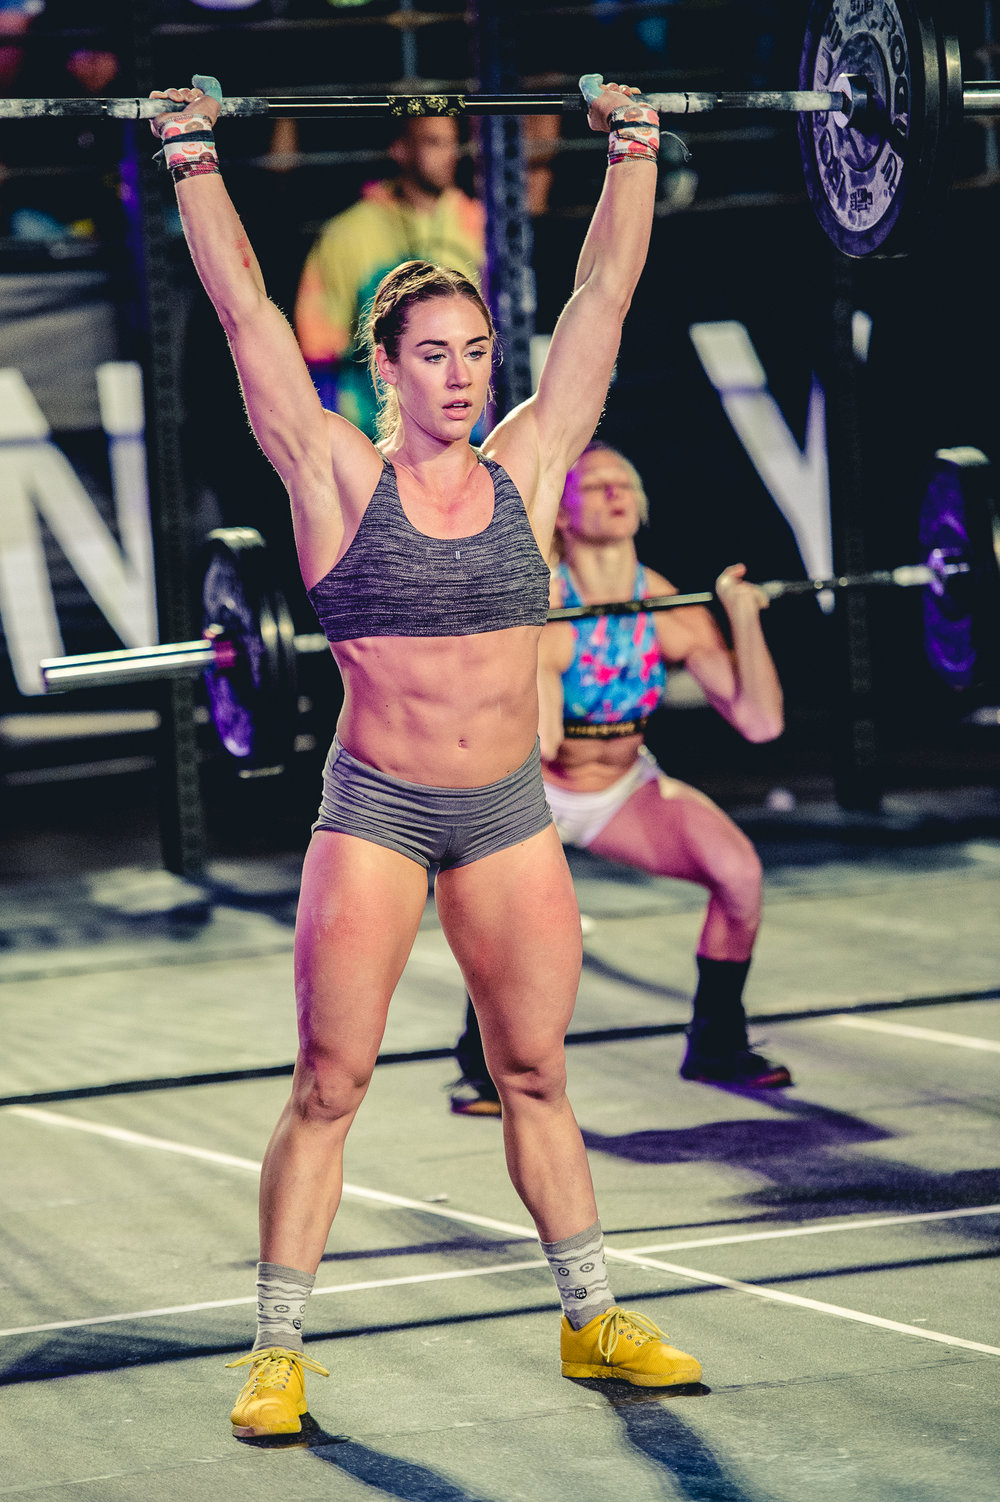 2018 Wodapalooza - Day 3, Photo Alessio Neri-001-83.jpg